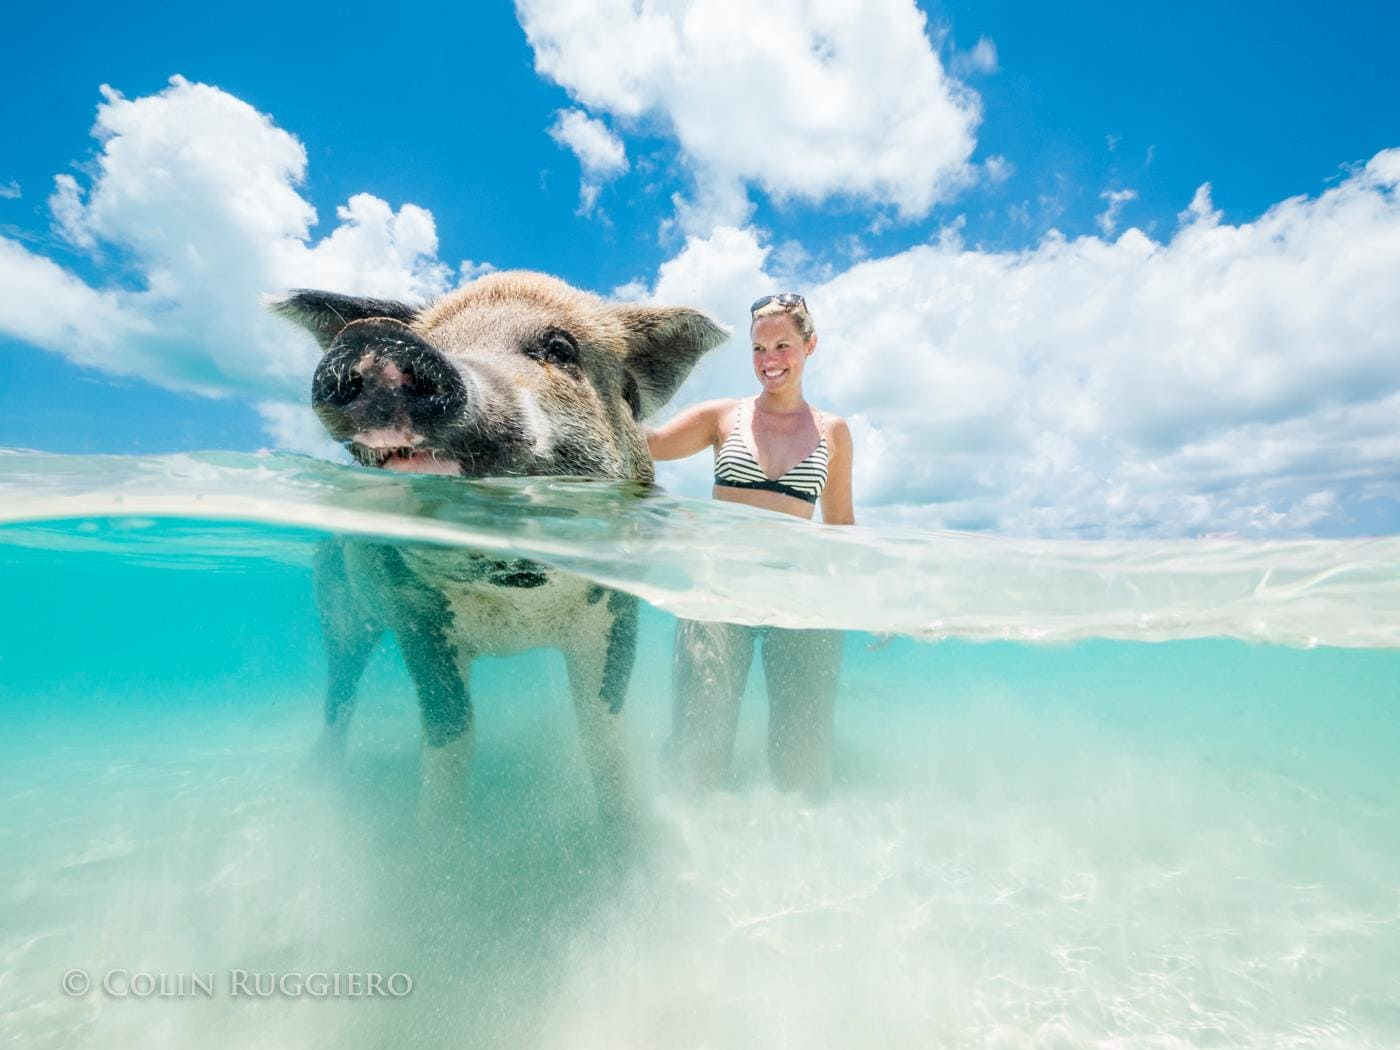 Pig Beach swim in Exuma | Credit: Colin Ruggiero